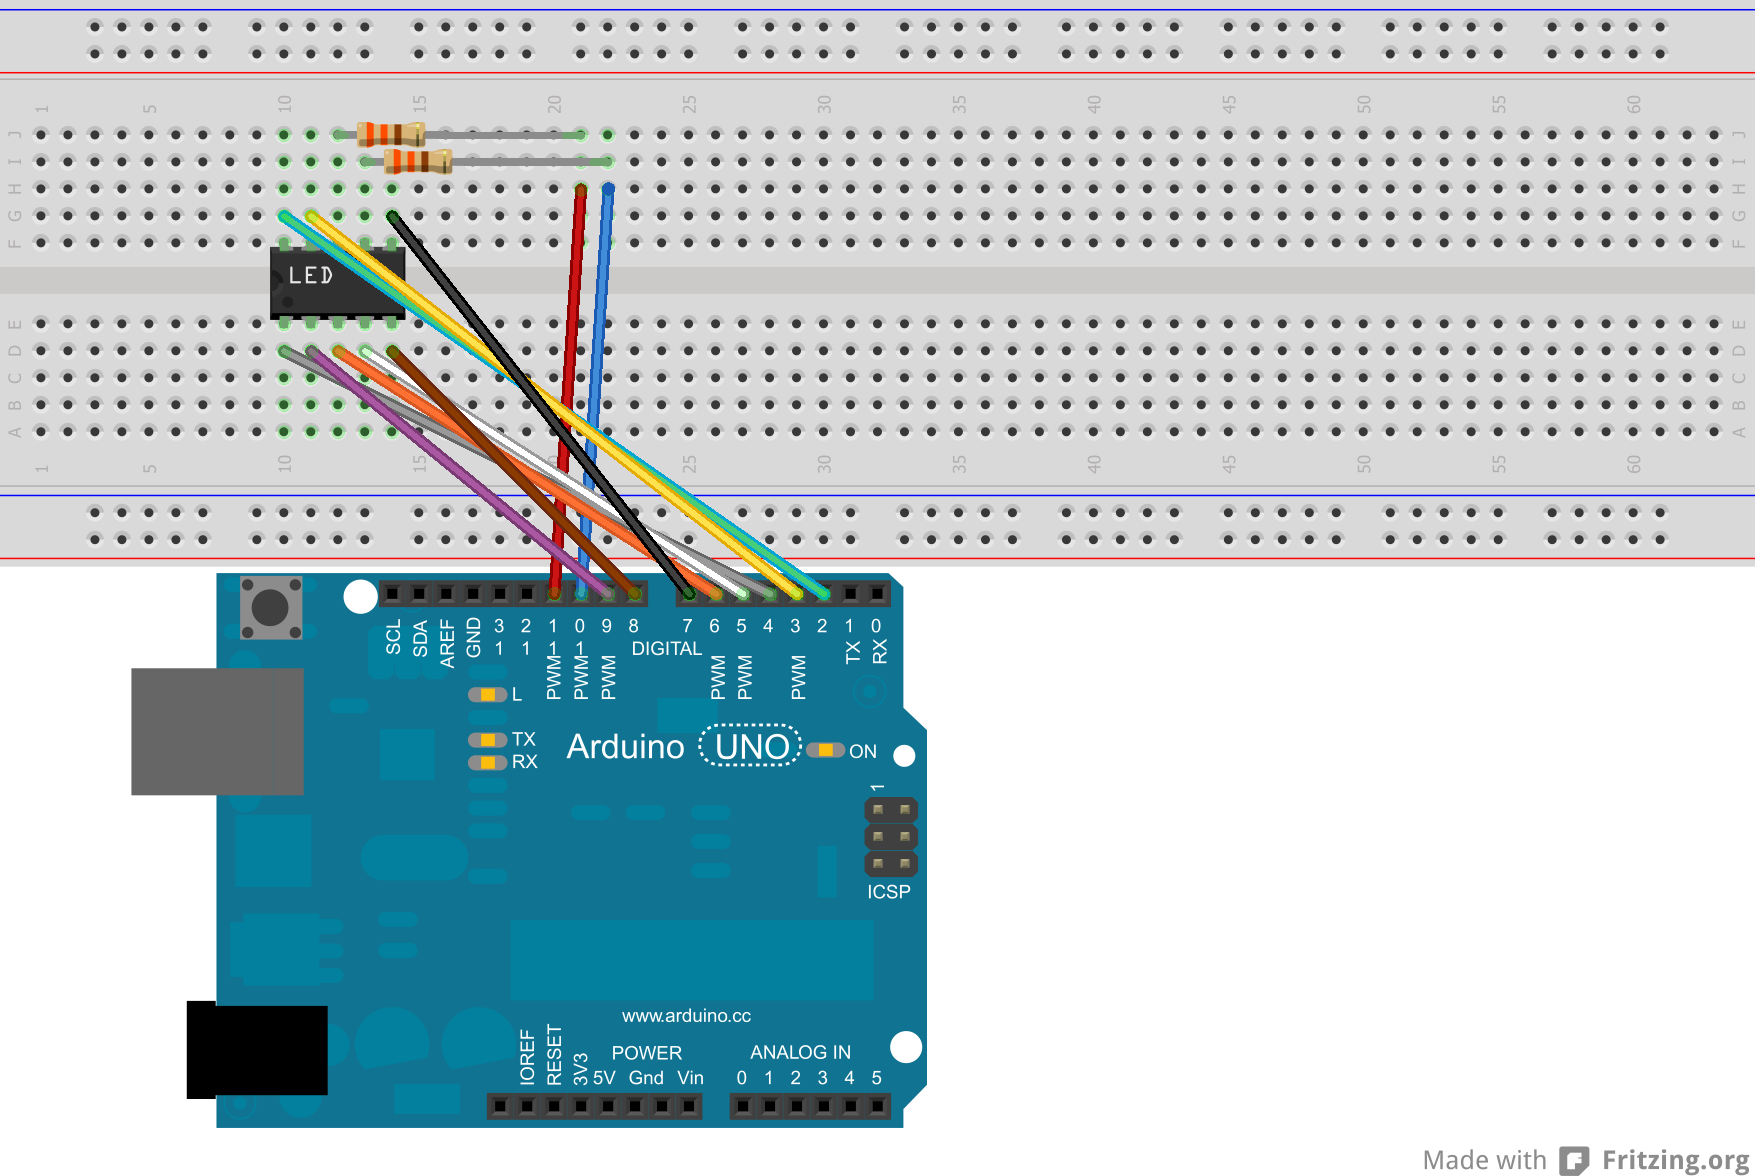 Using A 7 Segment Led Display W Arduino Uno Wiring Diagram An Illustration And Schematic Of This Can Be Found Below